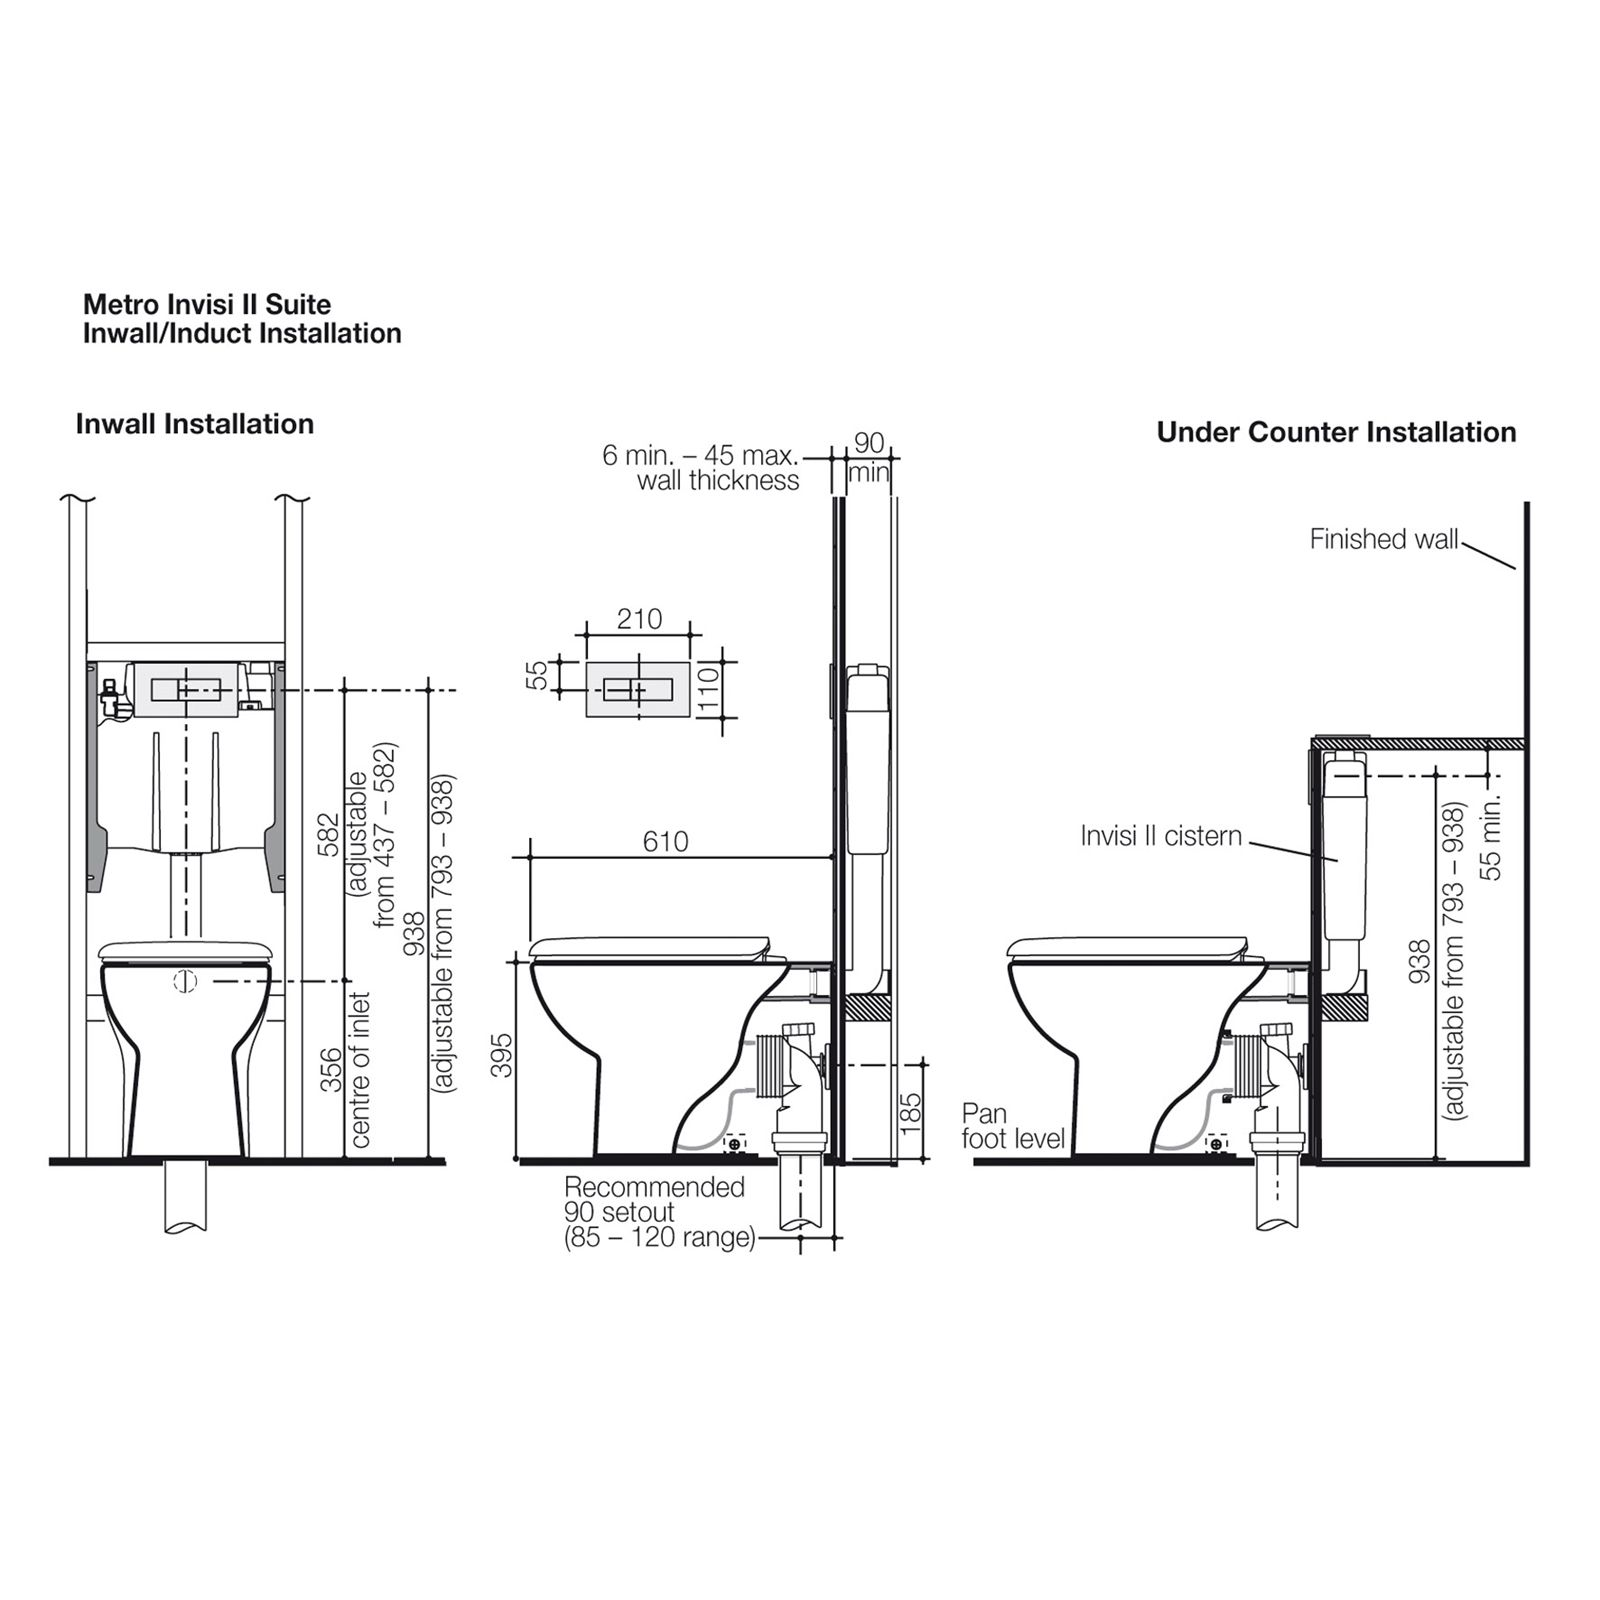 Caroma Wels 4 Star Metro Invisi Series Ii Wall Faced Toilet Suite